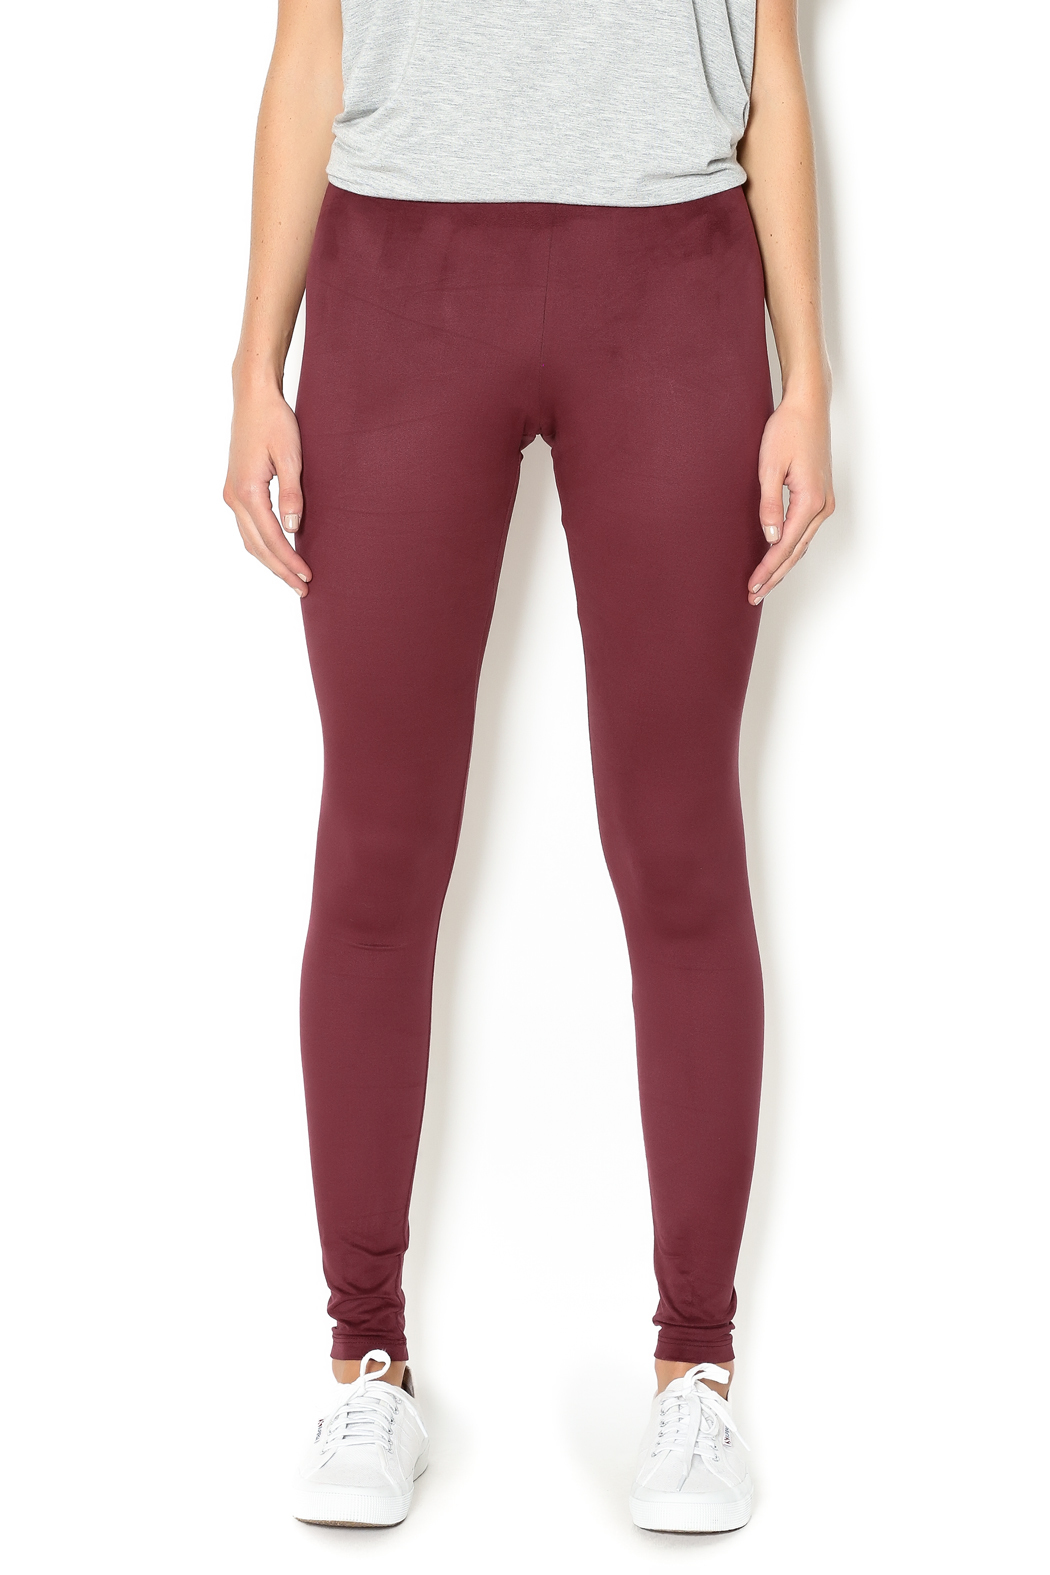 Basically Me Faux Suede Leggings - Front Cropped Image